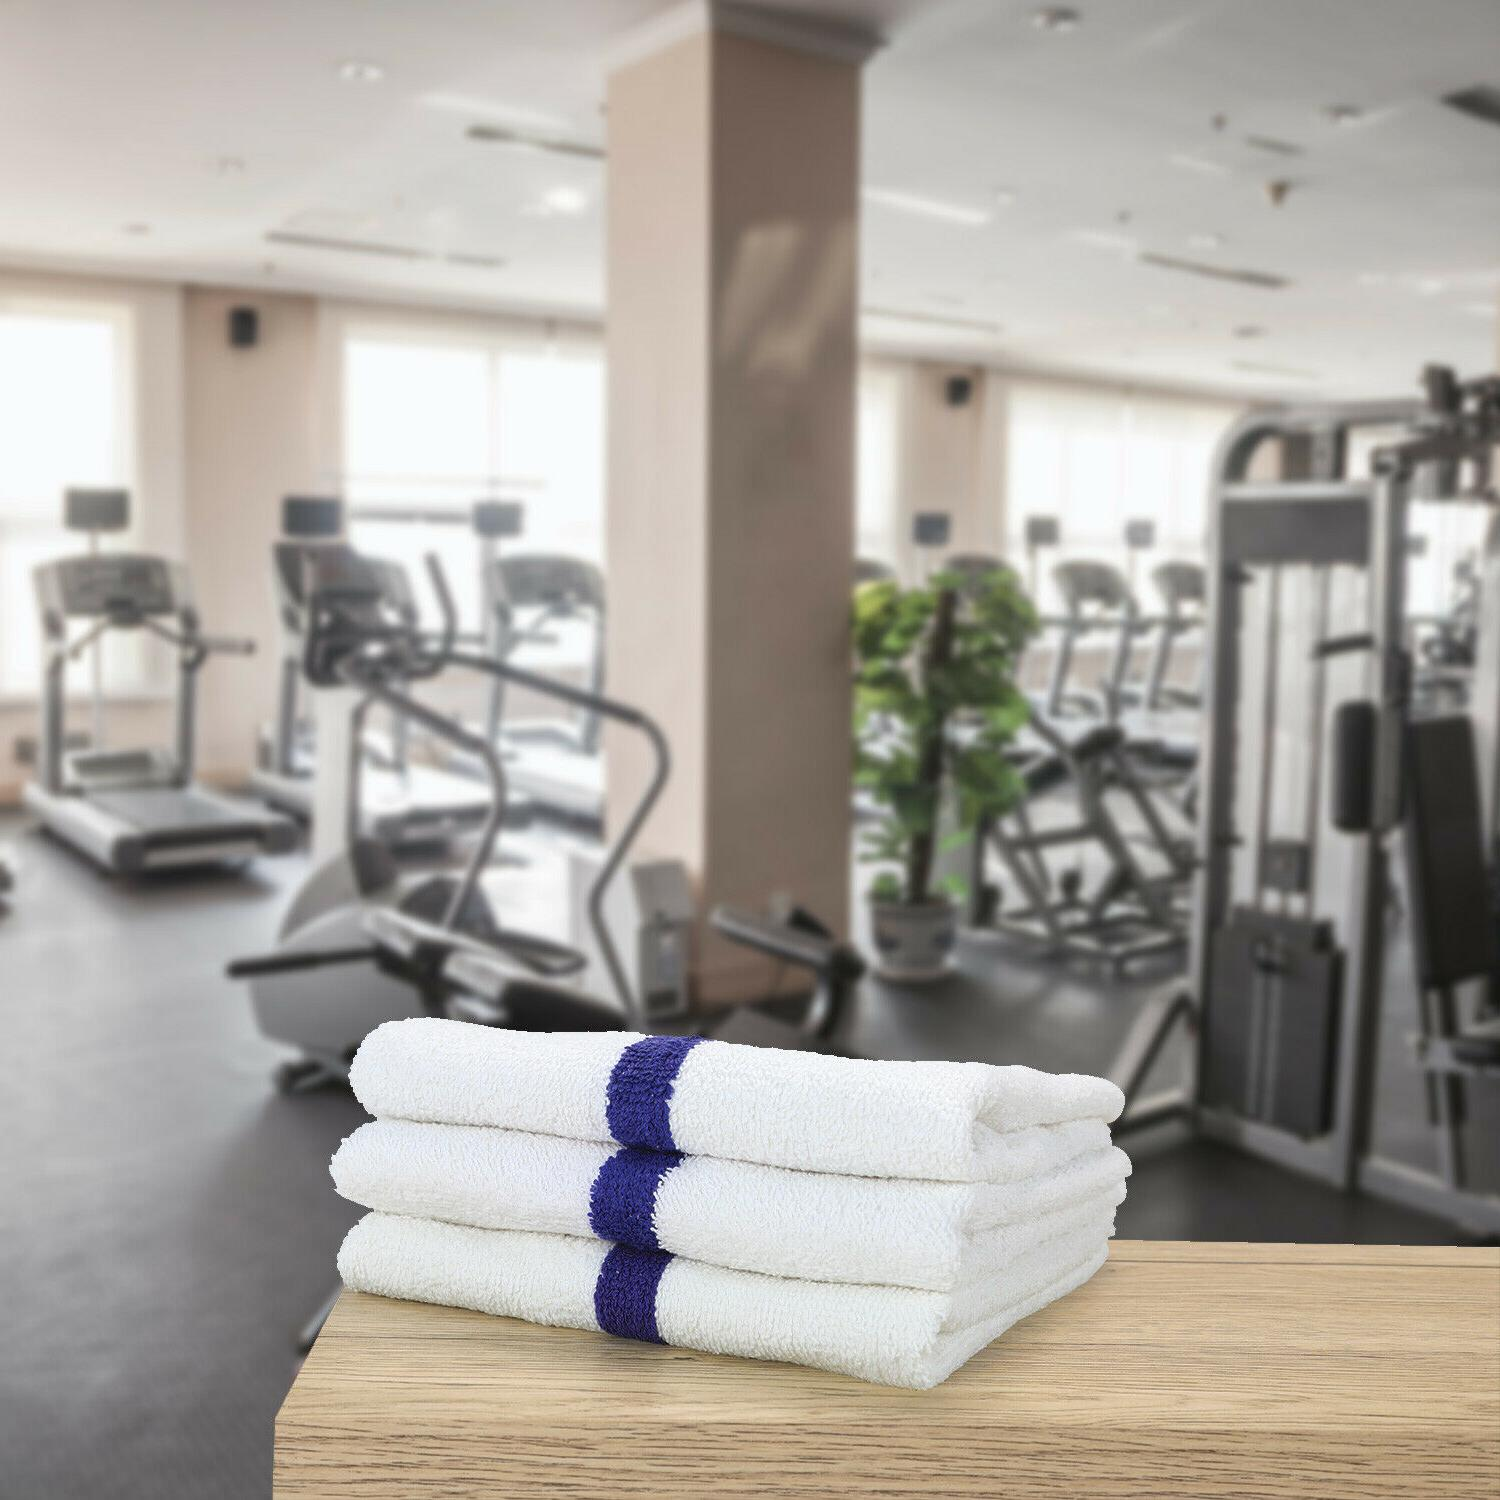 12 Pack of Gym Hand Towels 16 x 27 Absorbent Cotton Striped